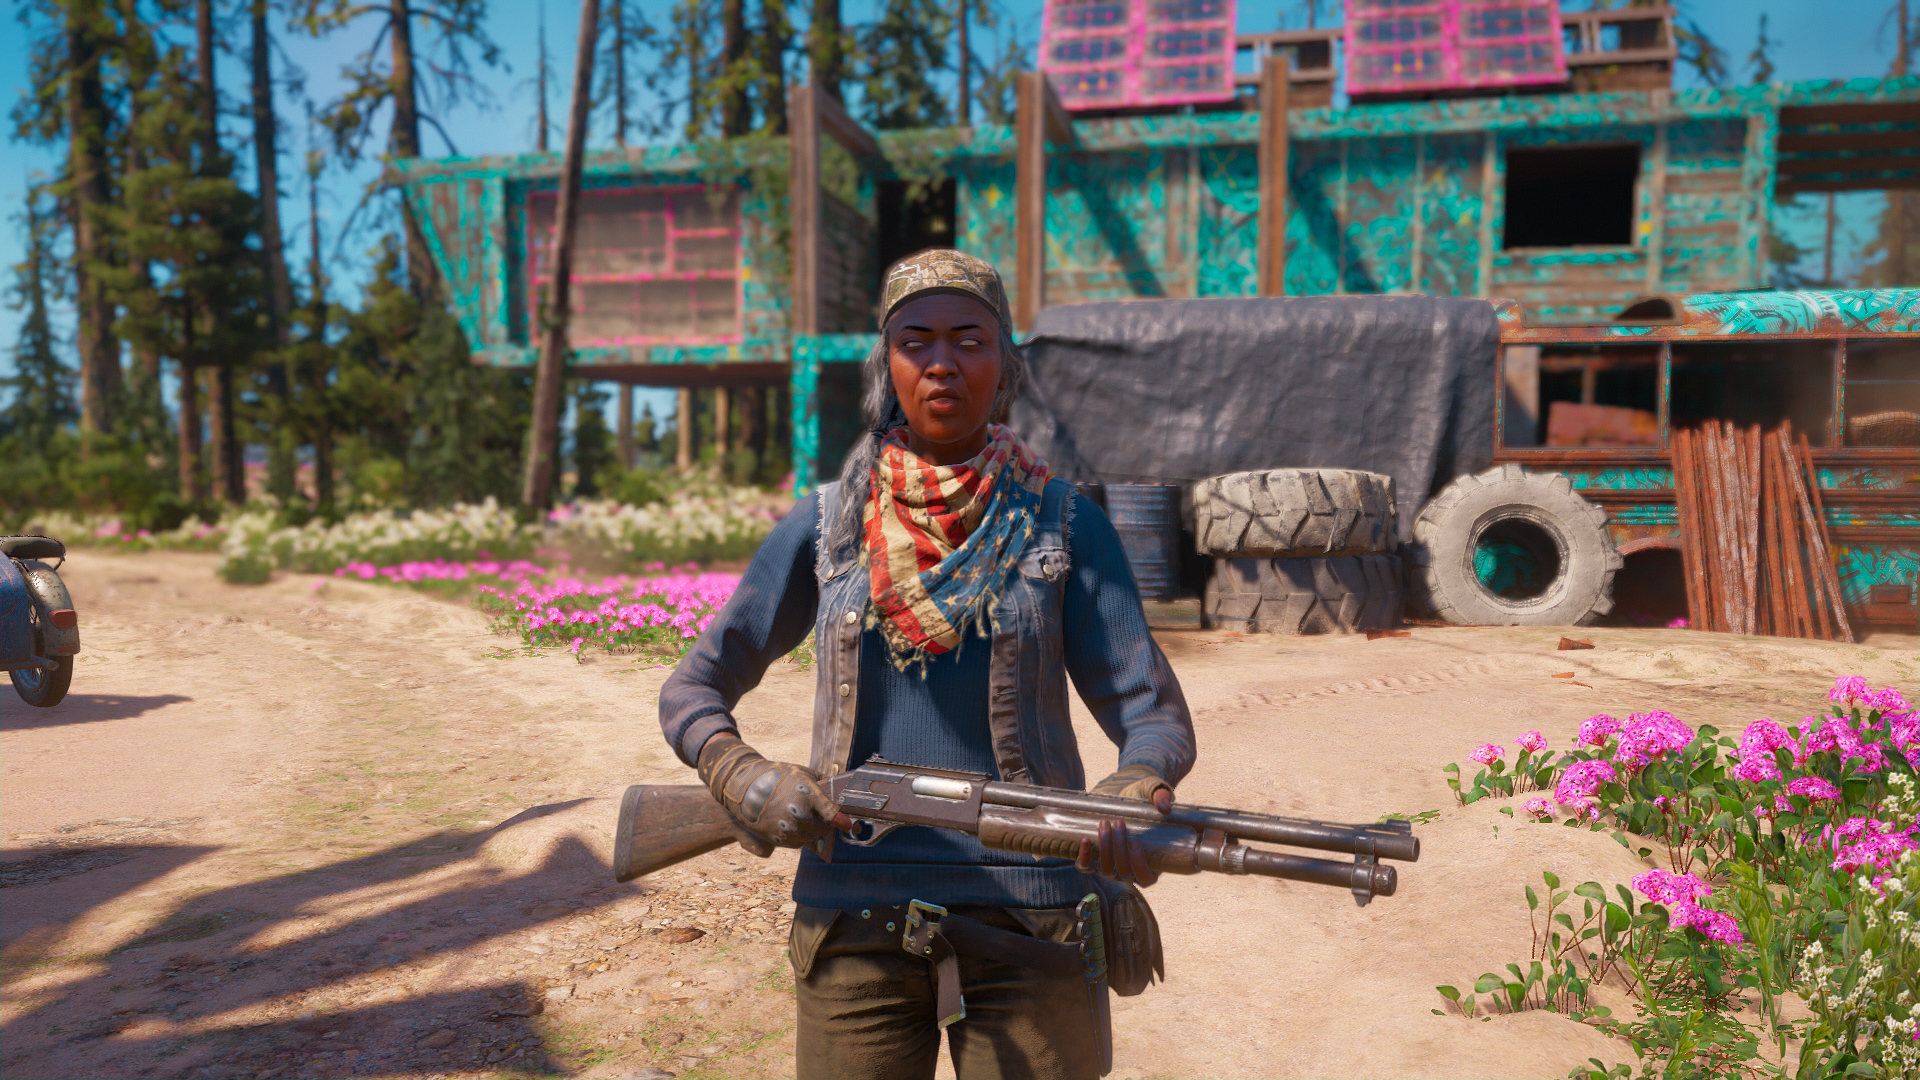 Old and new characters can be found throughout this game.